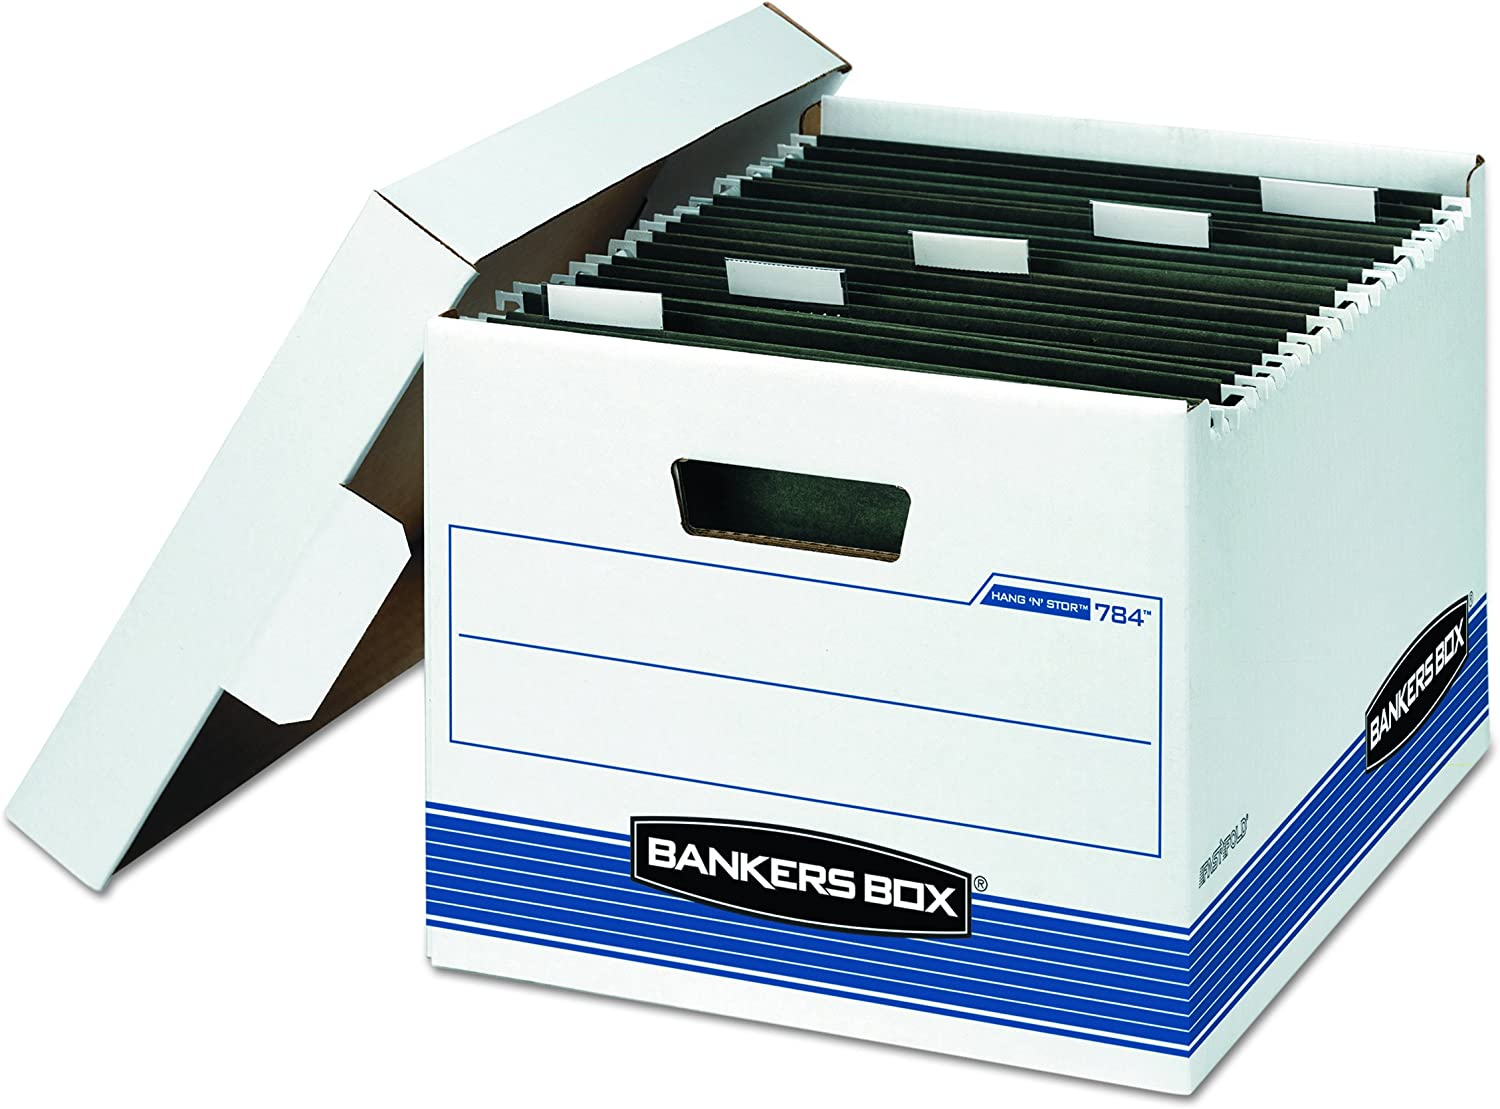 New product!! Bankers High order Box HANG'N'STOR Medium-Duty FastFold Lif Boxes Storage